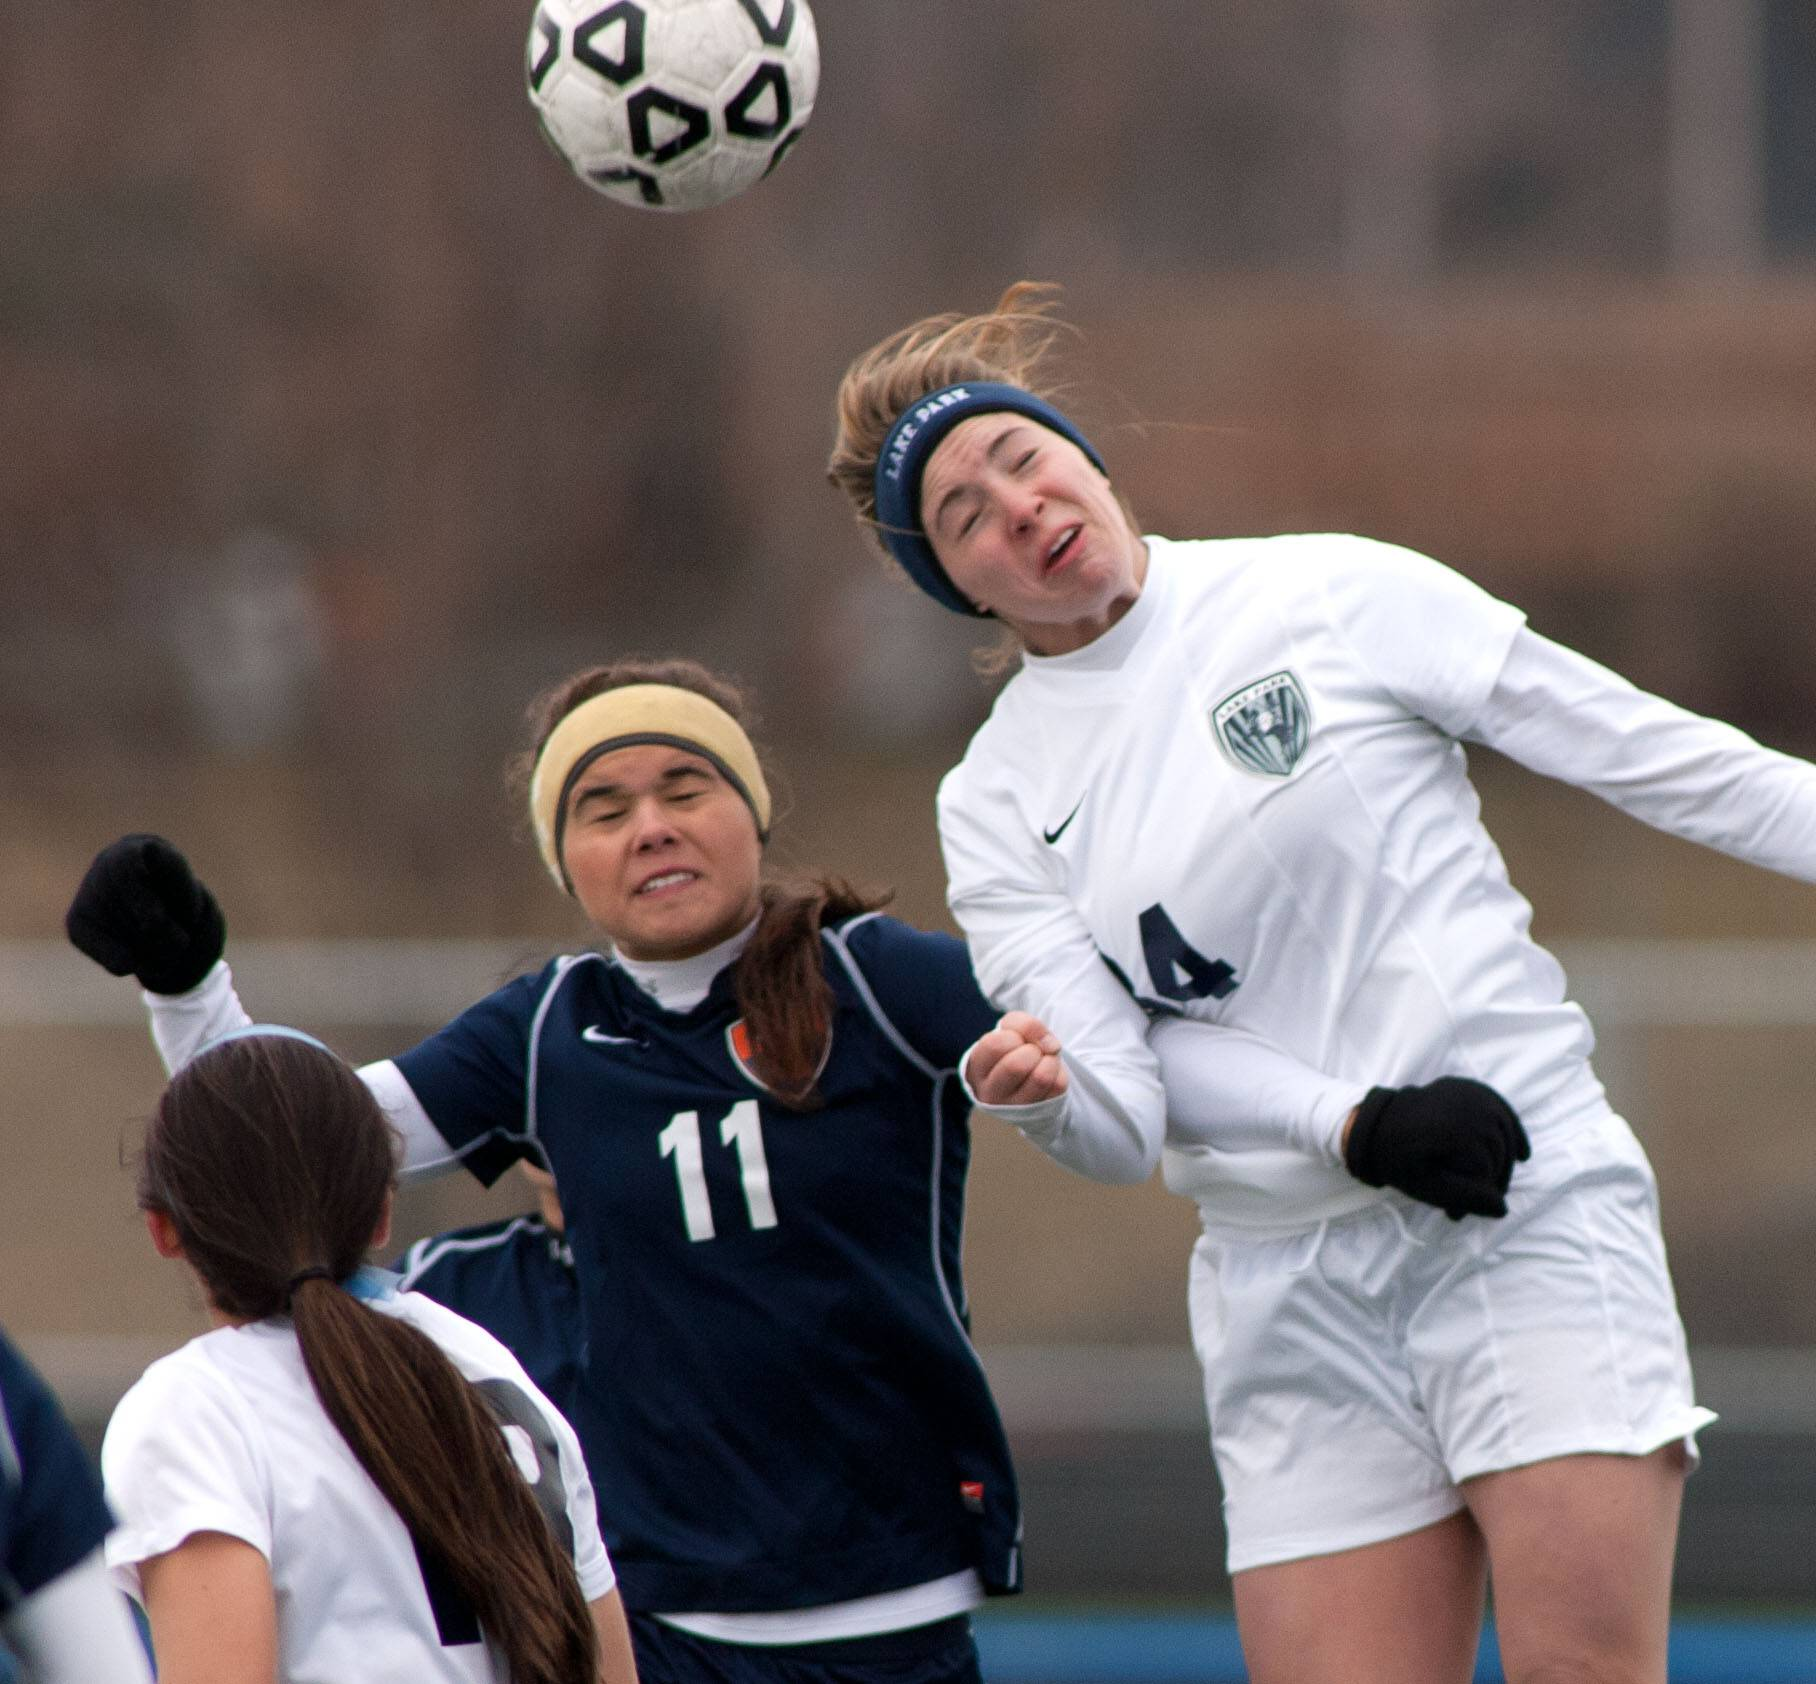 Buffalo Grove's Kim Herzog, left, challenges Lake Park's Lauren Bolnius during girls soccer action in Roselle.